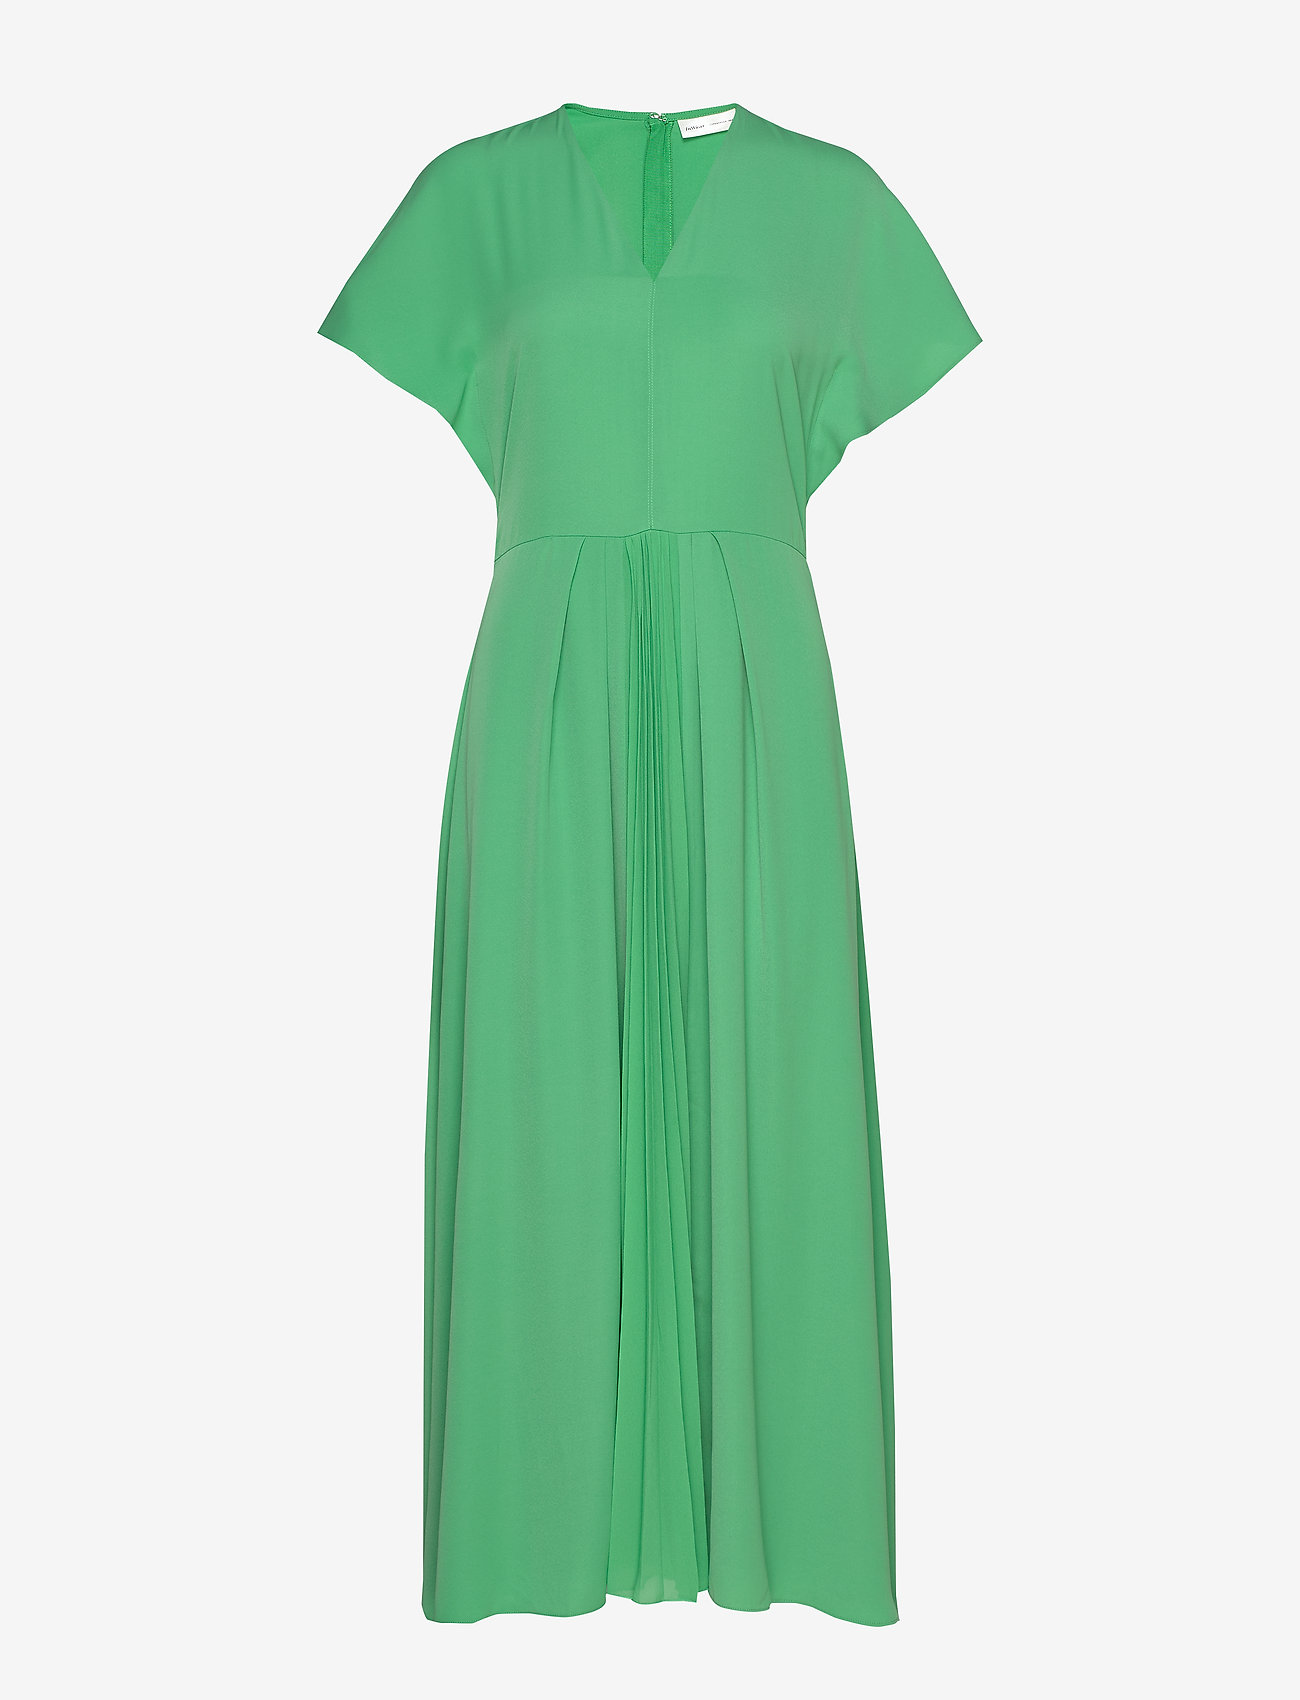 Rosieiw Dress (Spring Green) - InWear agXLB2